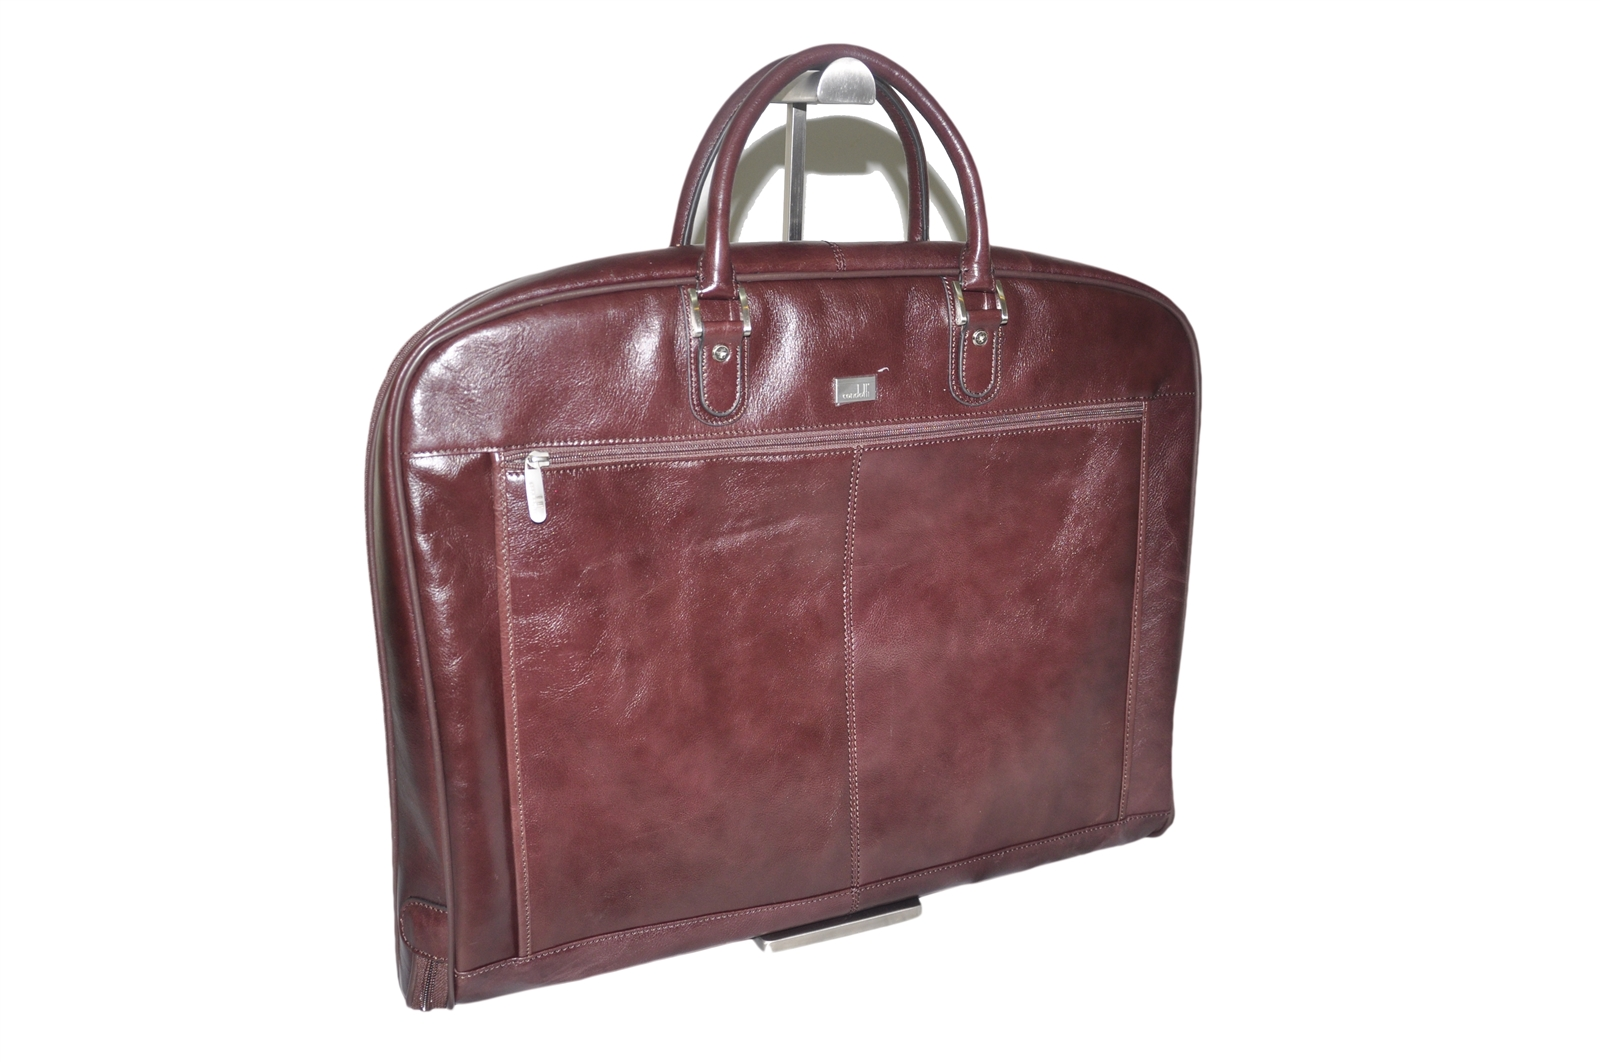 LEATHER SUITE BAG -CODE 136-0713